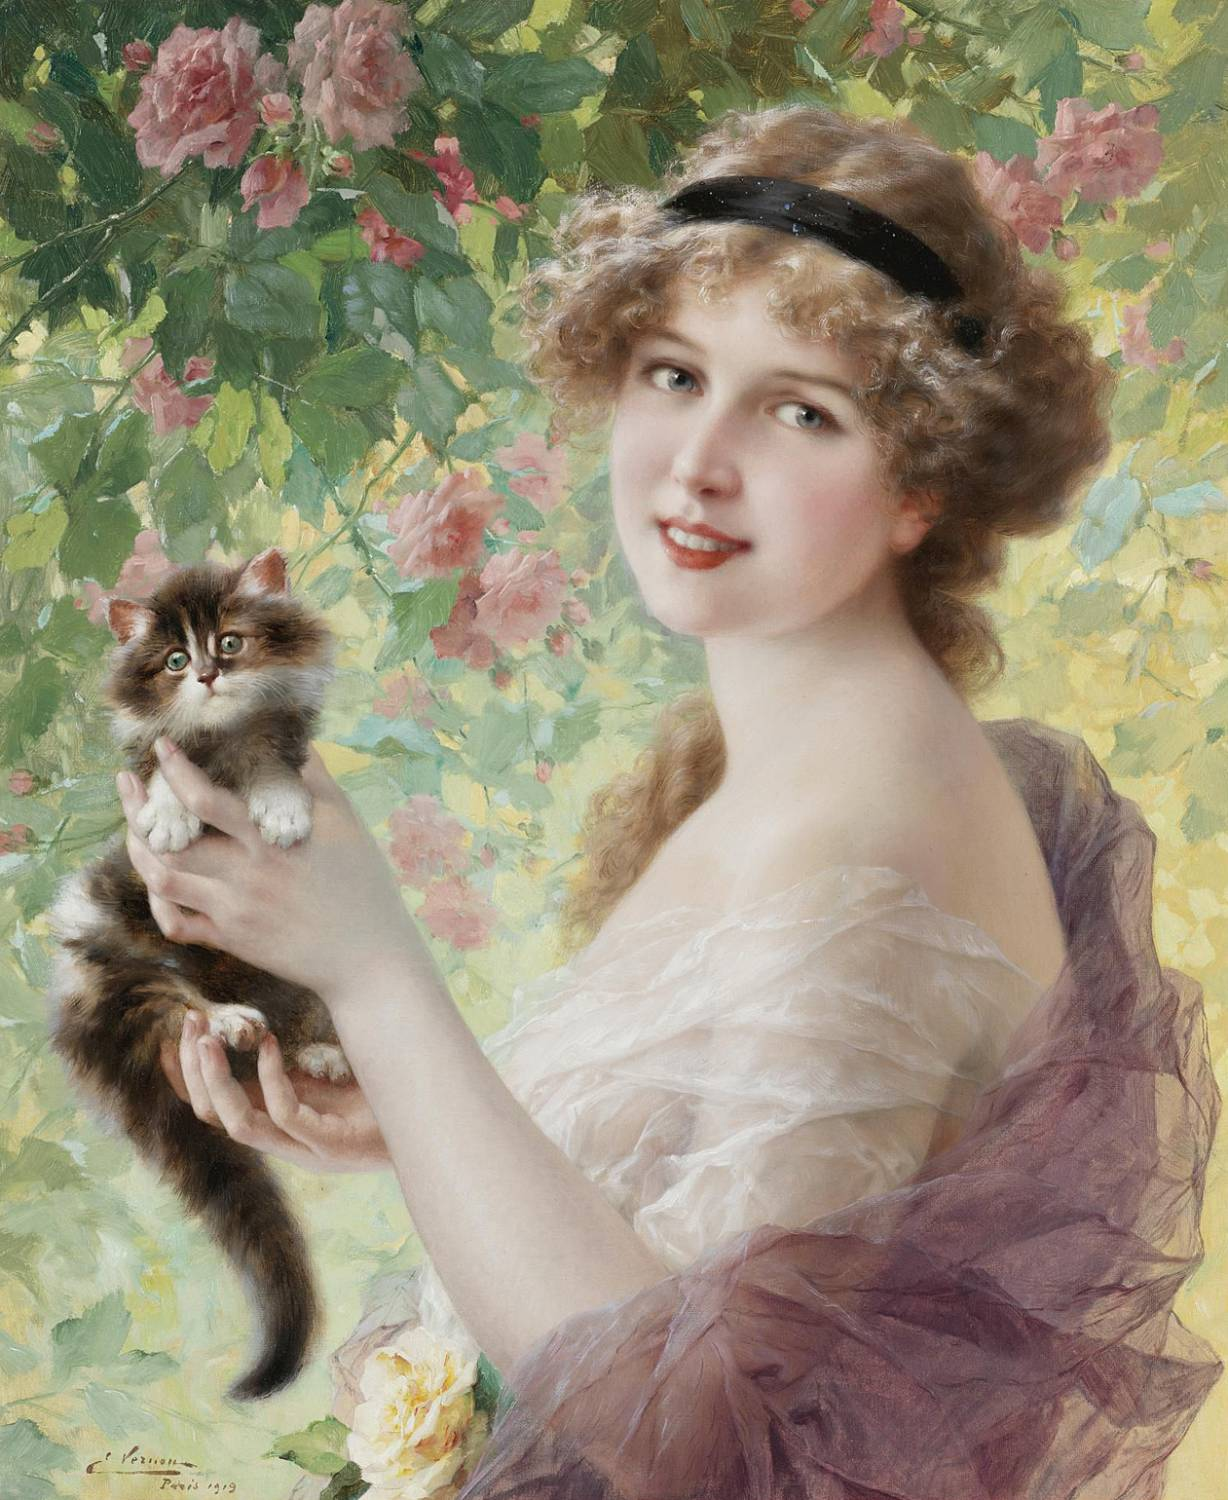 Her most precious by Emile Vernon - 1919